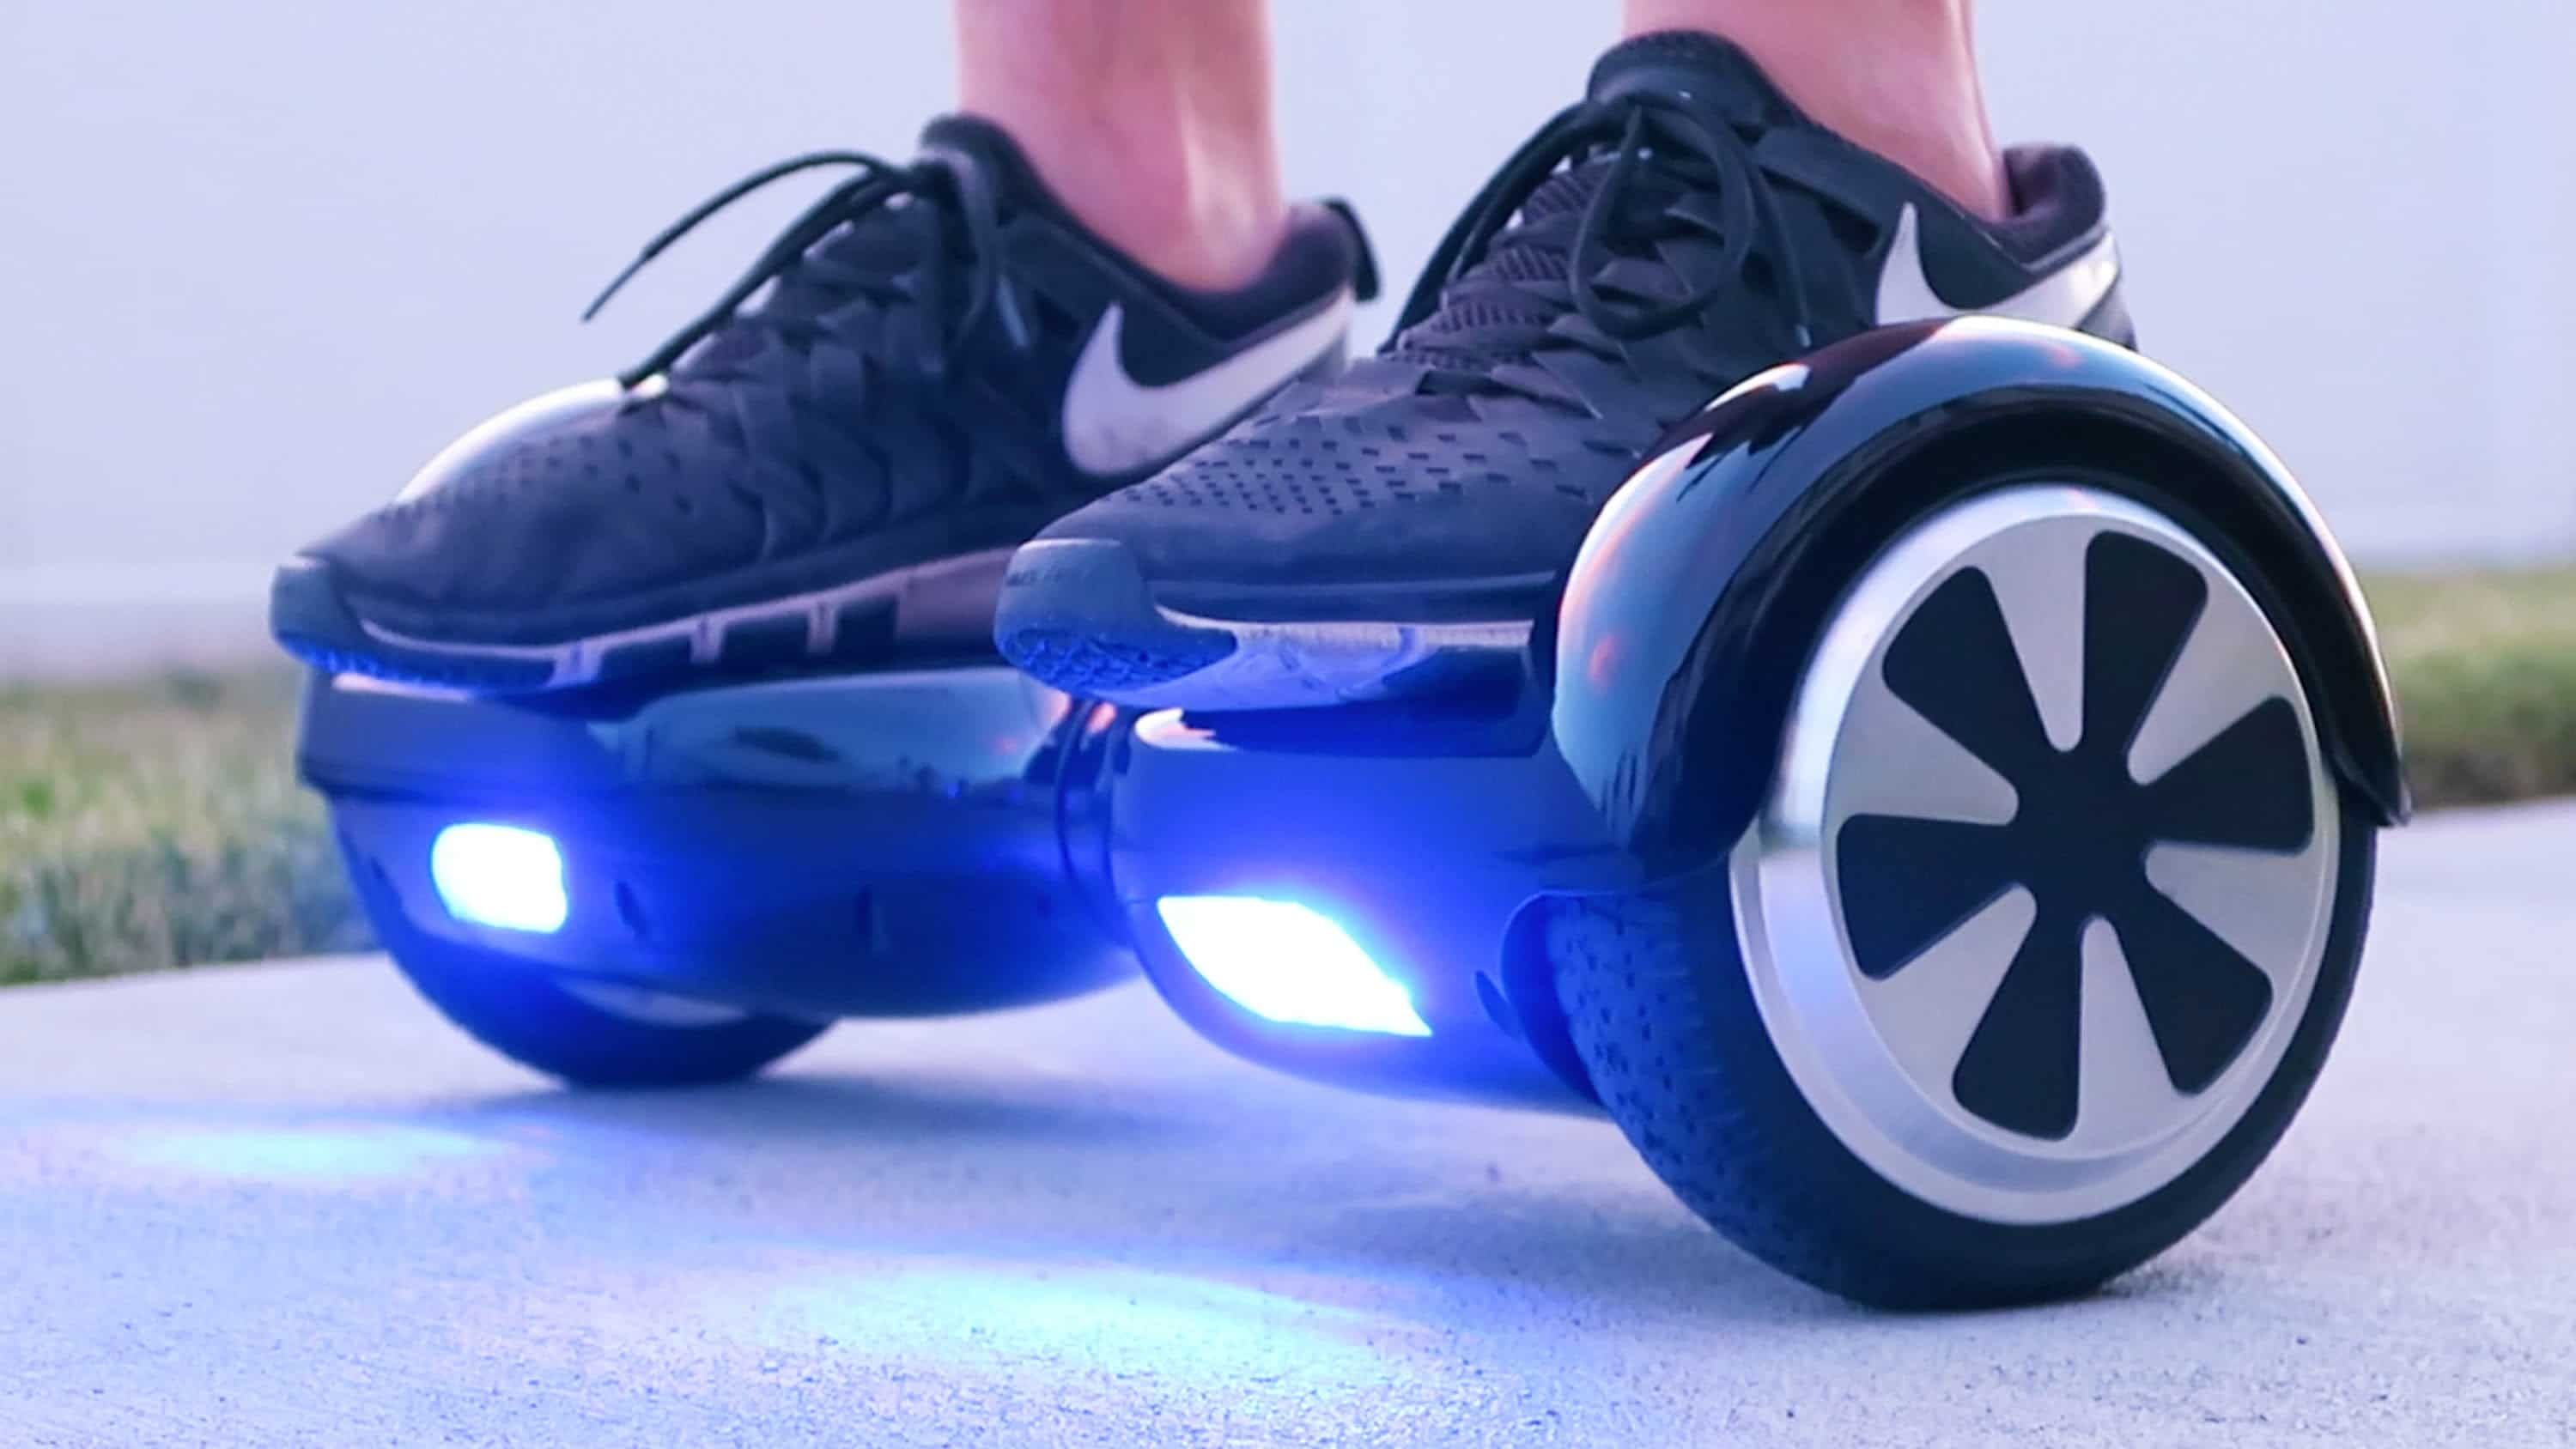 How To Ride A Hoverboard Electric Scooter A Complete Guide Electric Scooter For Kids Electric Scooter Kids Scooter